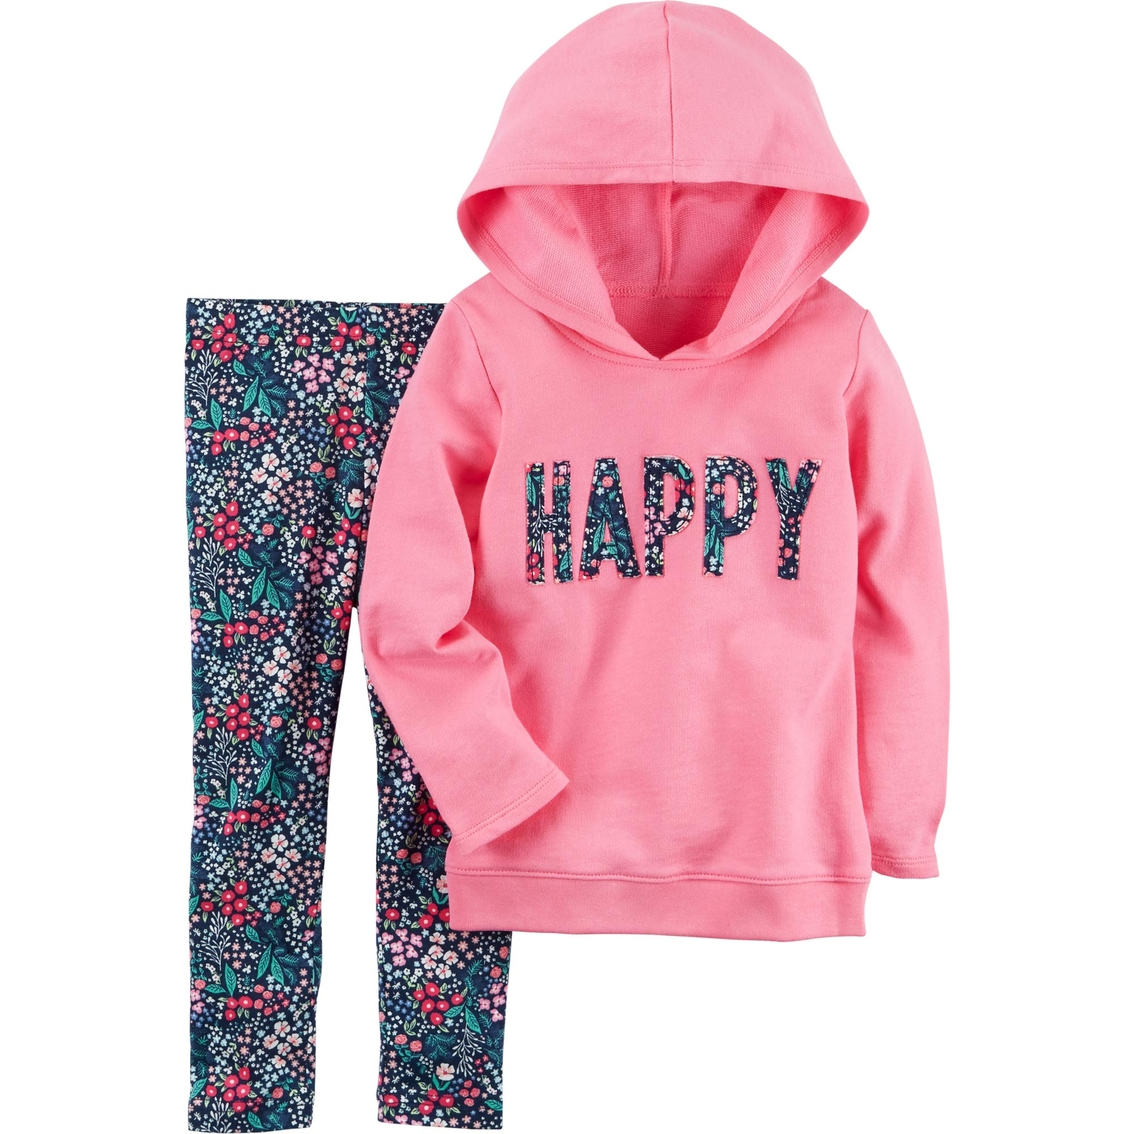 e0e54f4815a32 Carter's Toddler Girls 2 Pc. Happy Hoodie And Floral Leggings Set ...